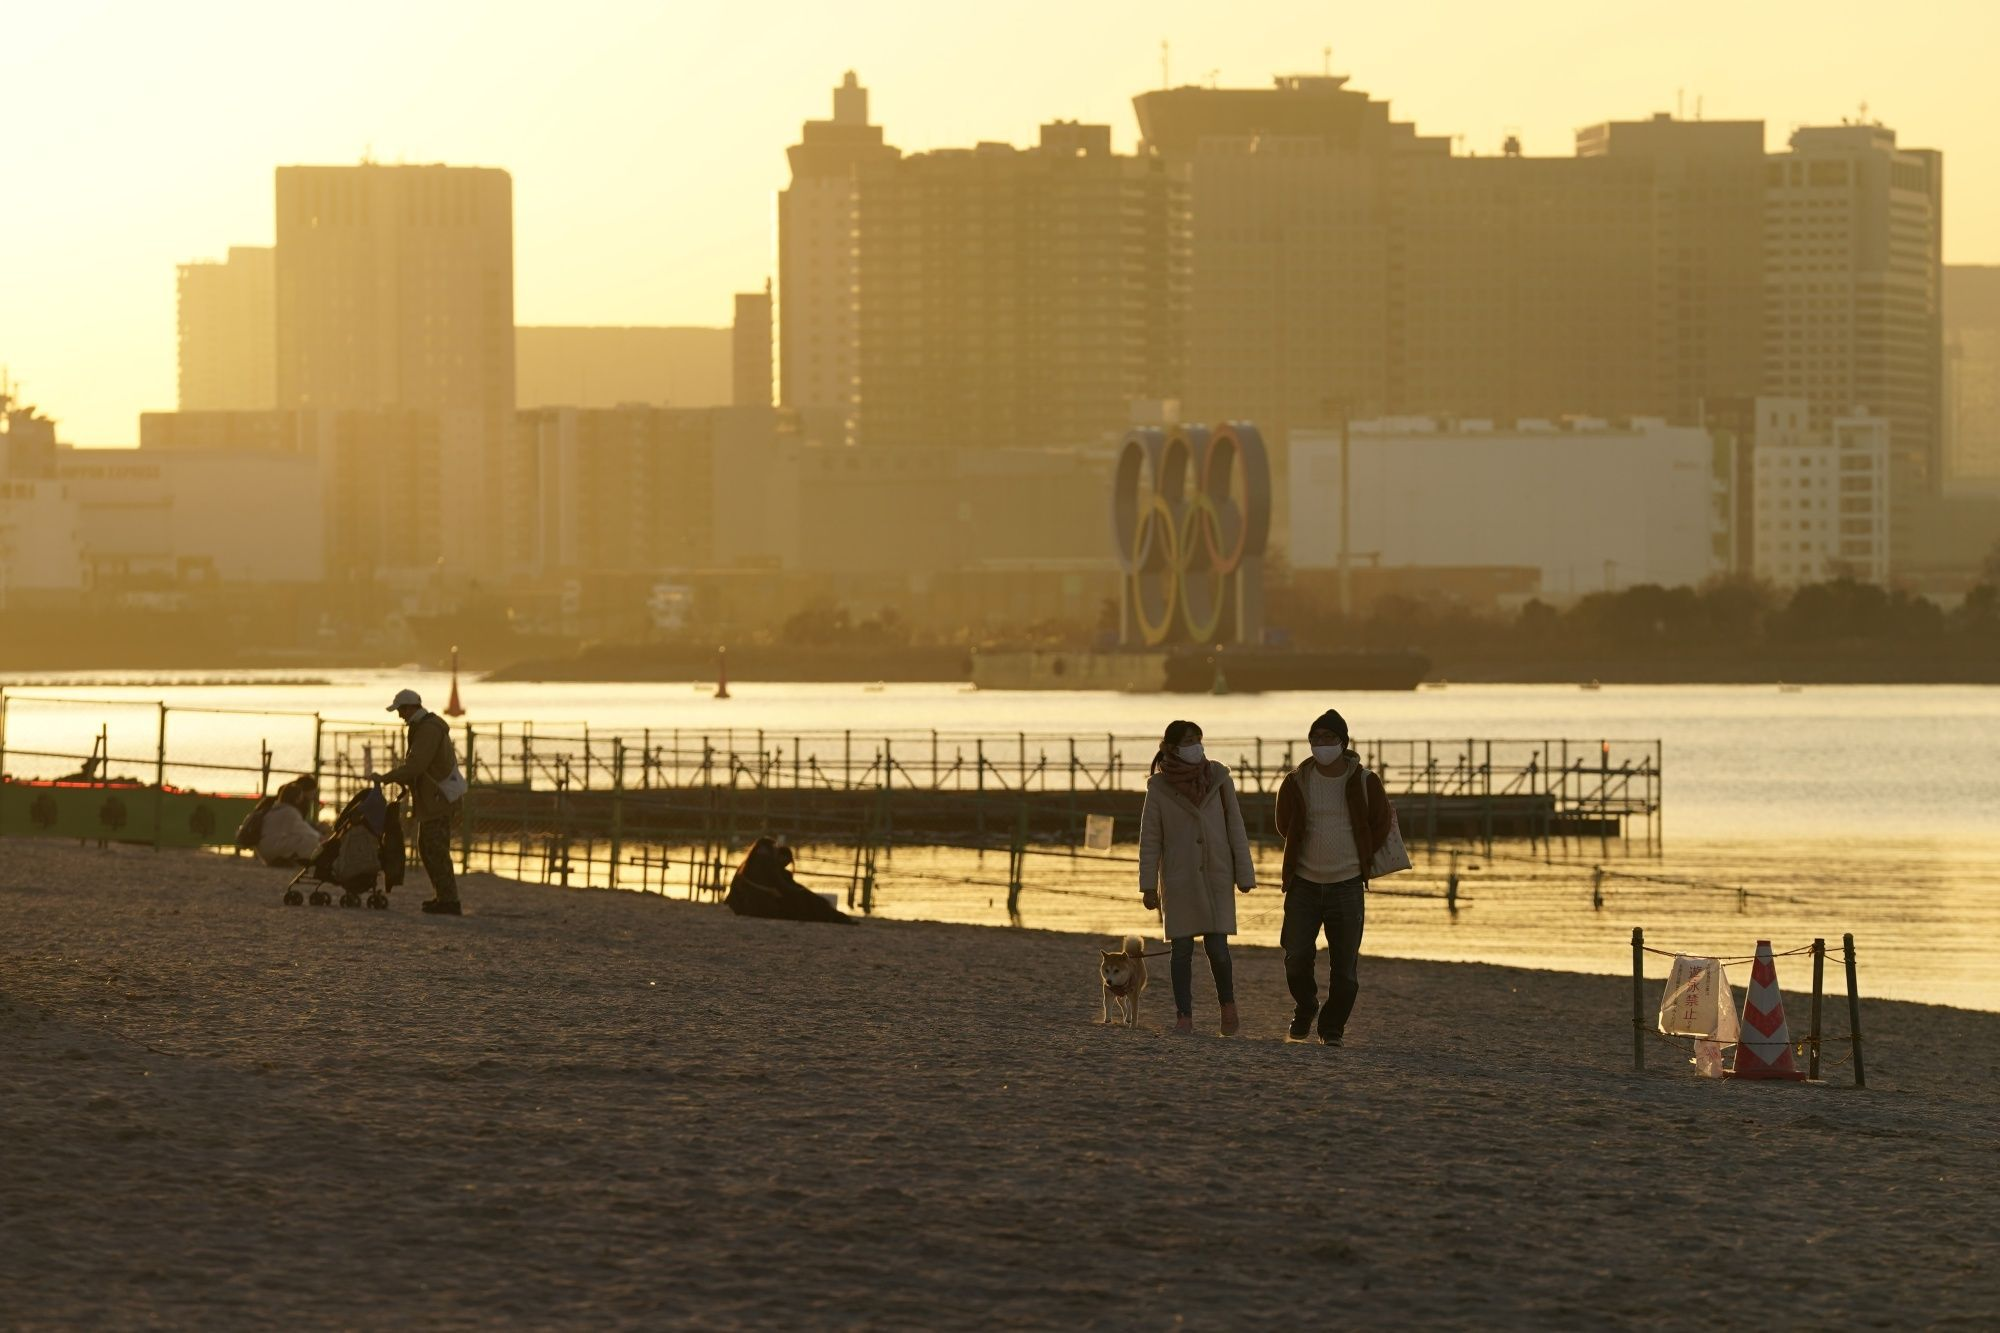 Odaiba Marine Park, the venue for triathlon and marathon swimming events during Tokyo 2020 Olympic Games.